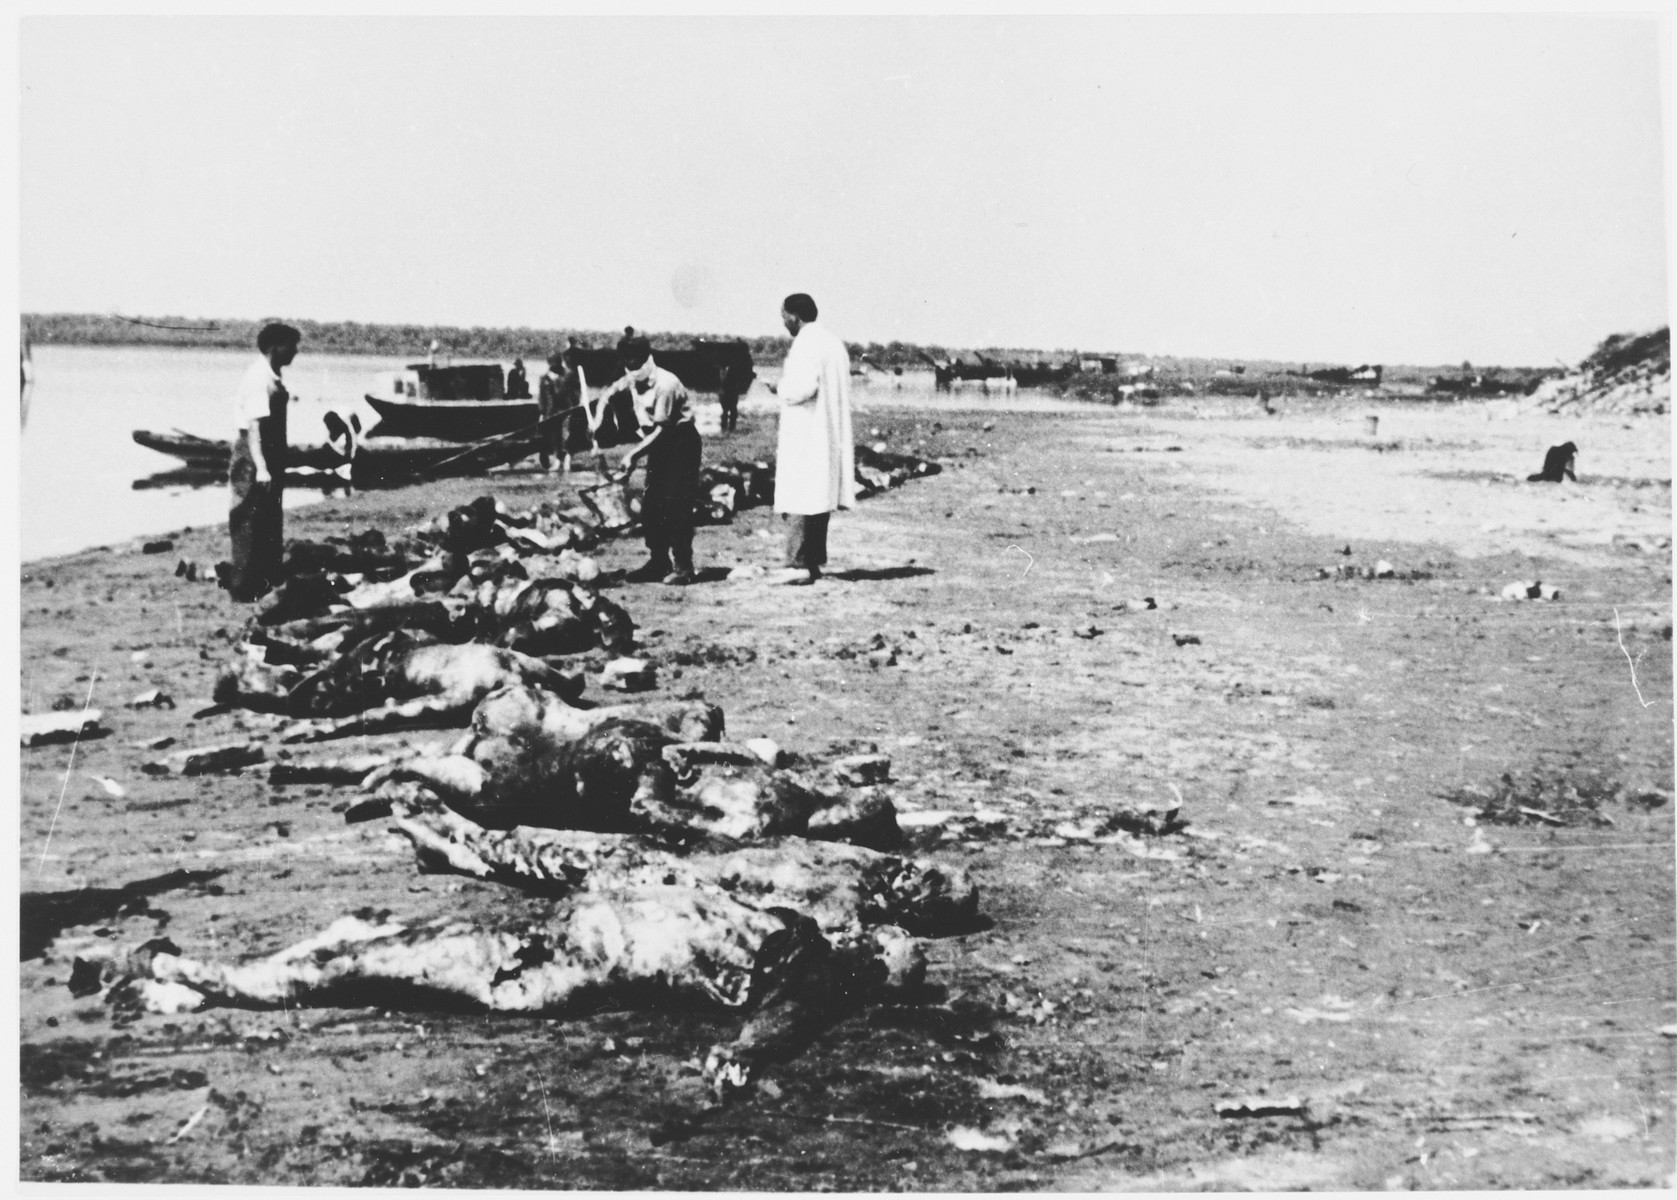 Dr. Ante Preru, a forensic specialist, oversees the retrieval of the bodies of concentration camp victims from the Sava River [probably near the Jasenovac concentration camp].